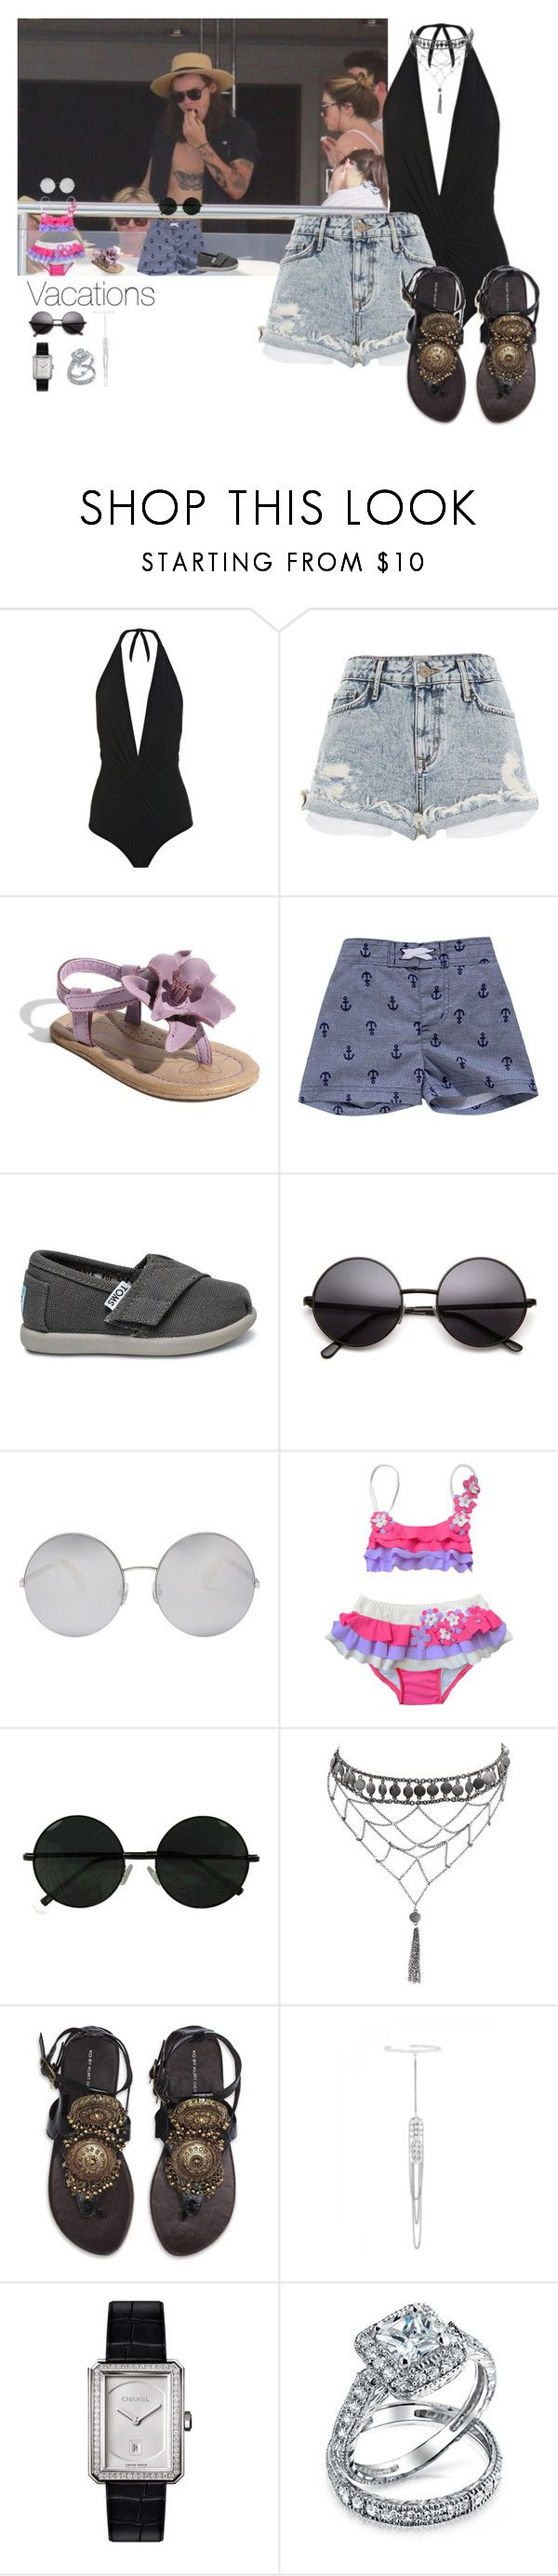 """Vacations"" by wiki0622 ❤ liked on Polyvore featuring Karla Colletto, River Island, Victoria Beckham, Ciao Bella, Ettika, Kurt Geiger, sass & bide, Chanel and Bling Jewelry"